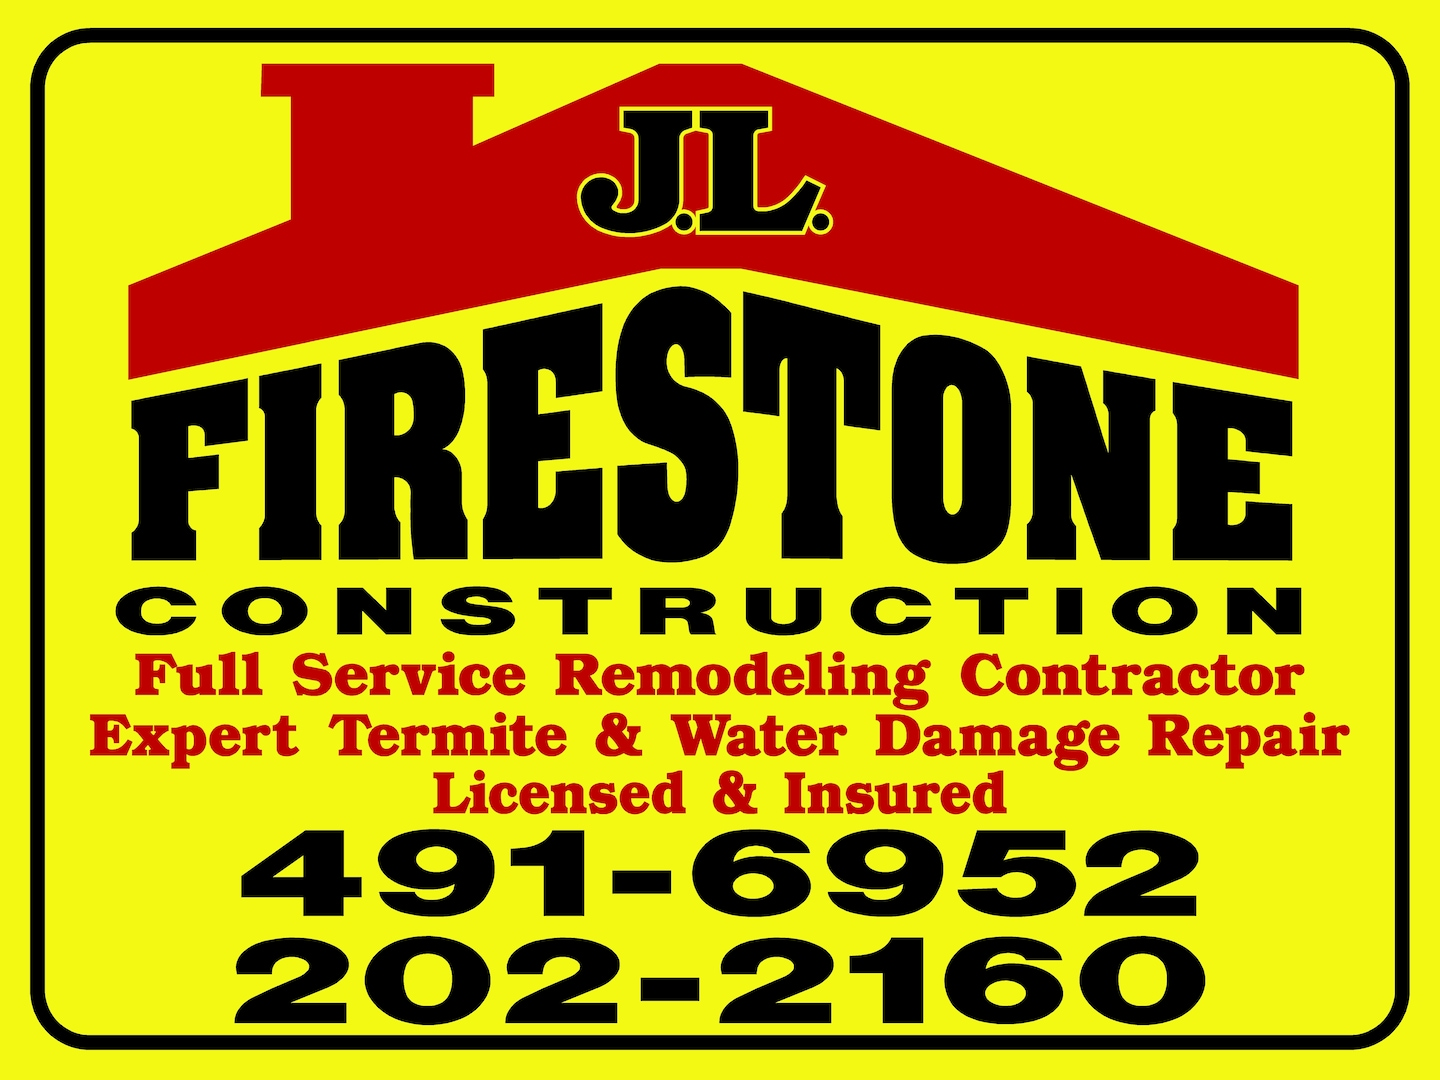 J L FIRESTONE CONSTRUCTION